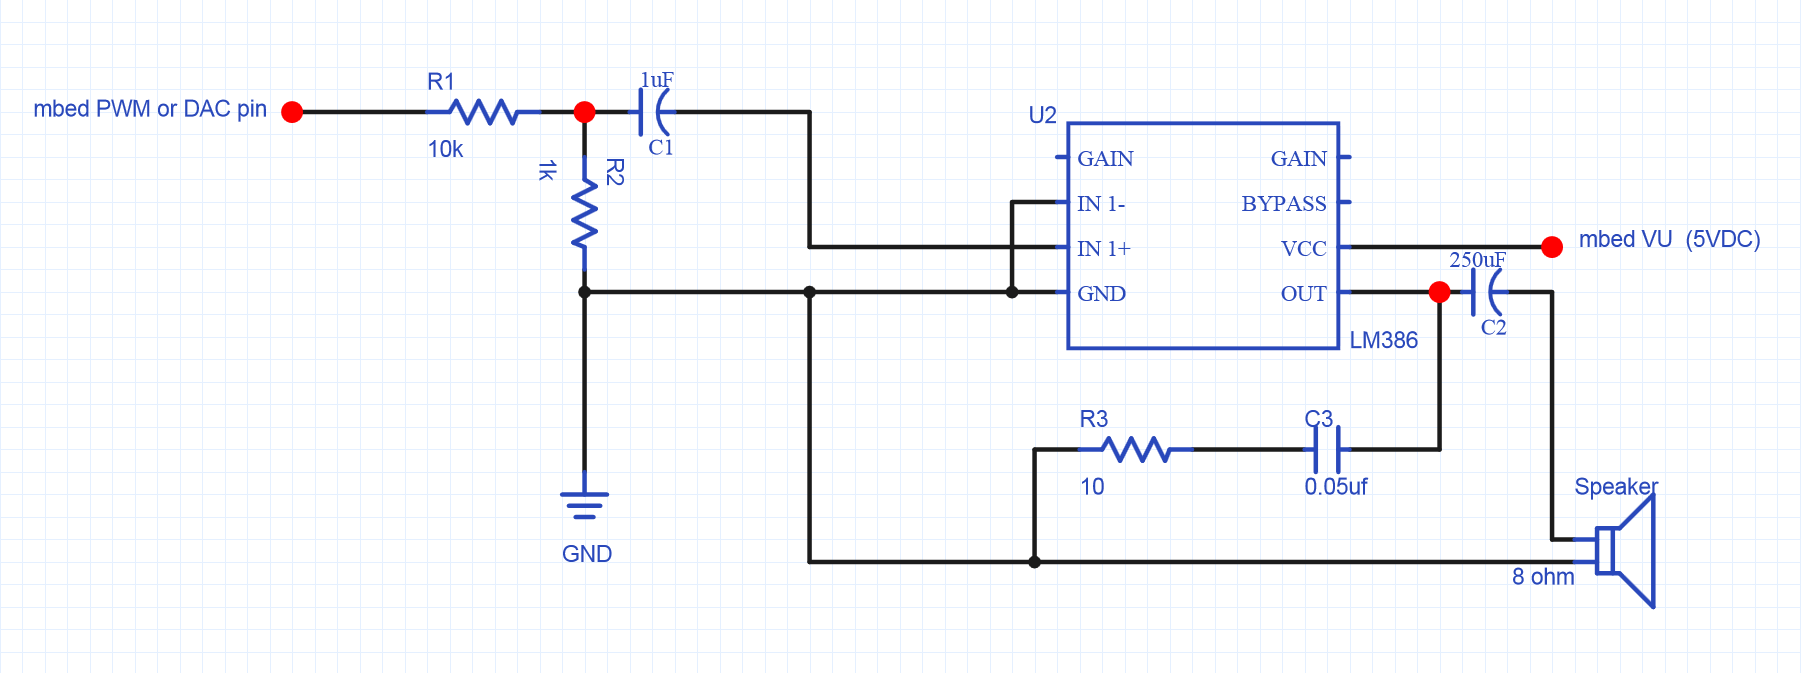 Using A Speaker For Audio Output Mbed Pulse Counter Switch Circuit Audiocircuit Diagram Lm386 Amplifier Small 8ohm 5w Smaller Value R1 Can Be Used To Increase The Volume